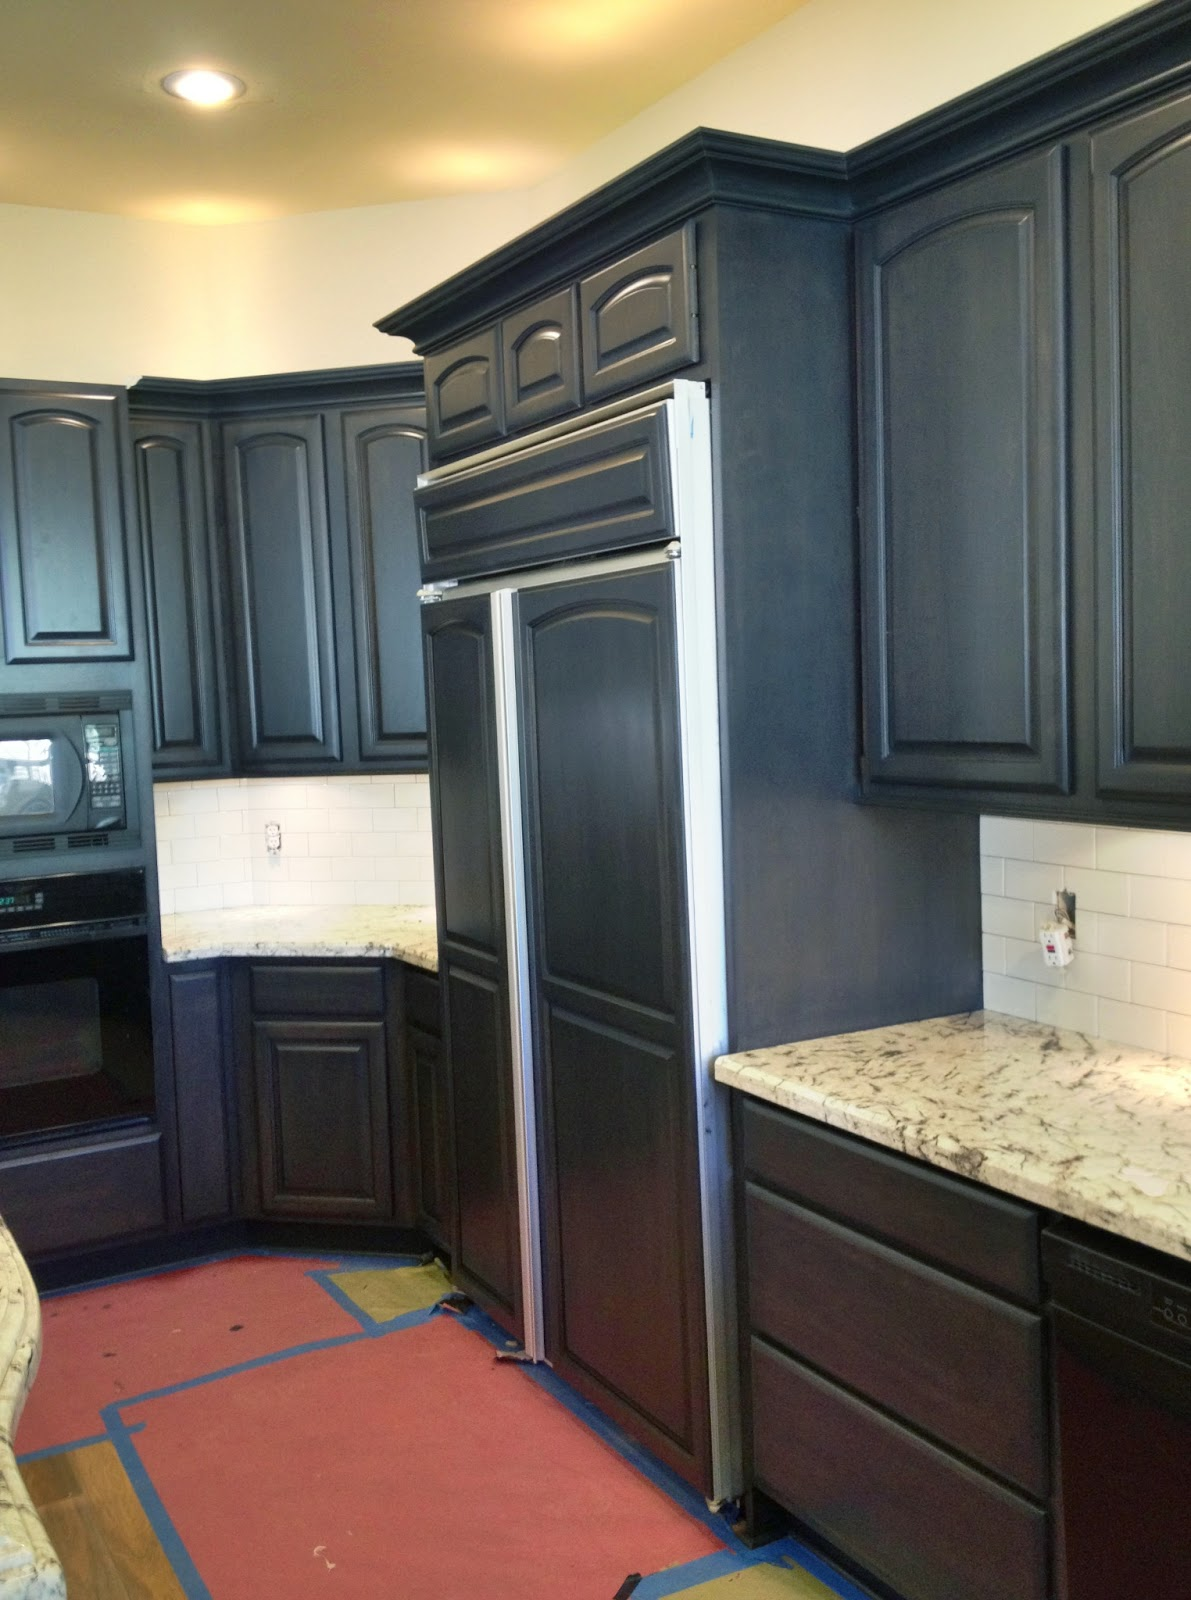 The glamorous How to refinish kitchen cabinets without stripping ideas pics